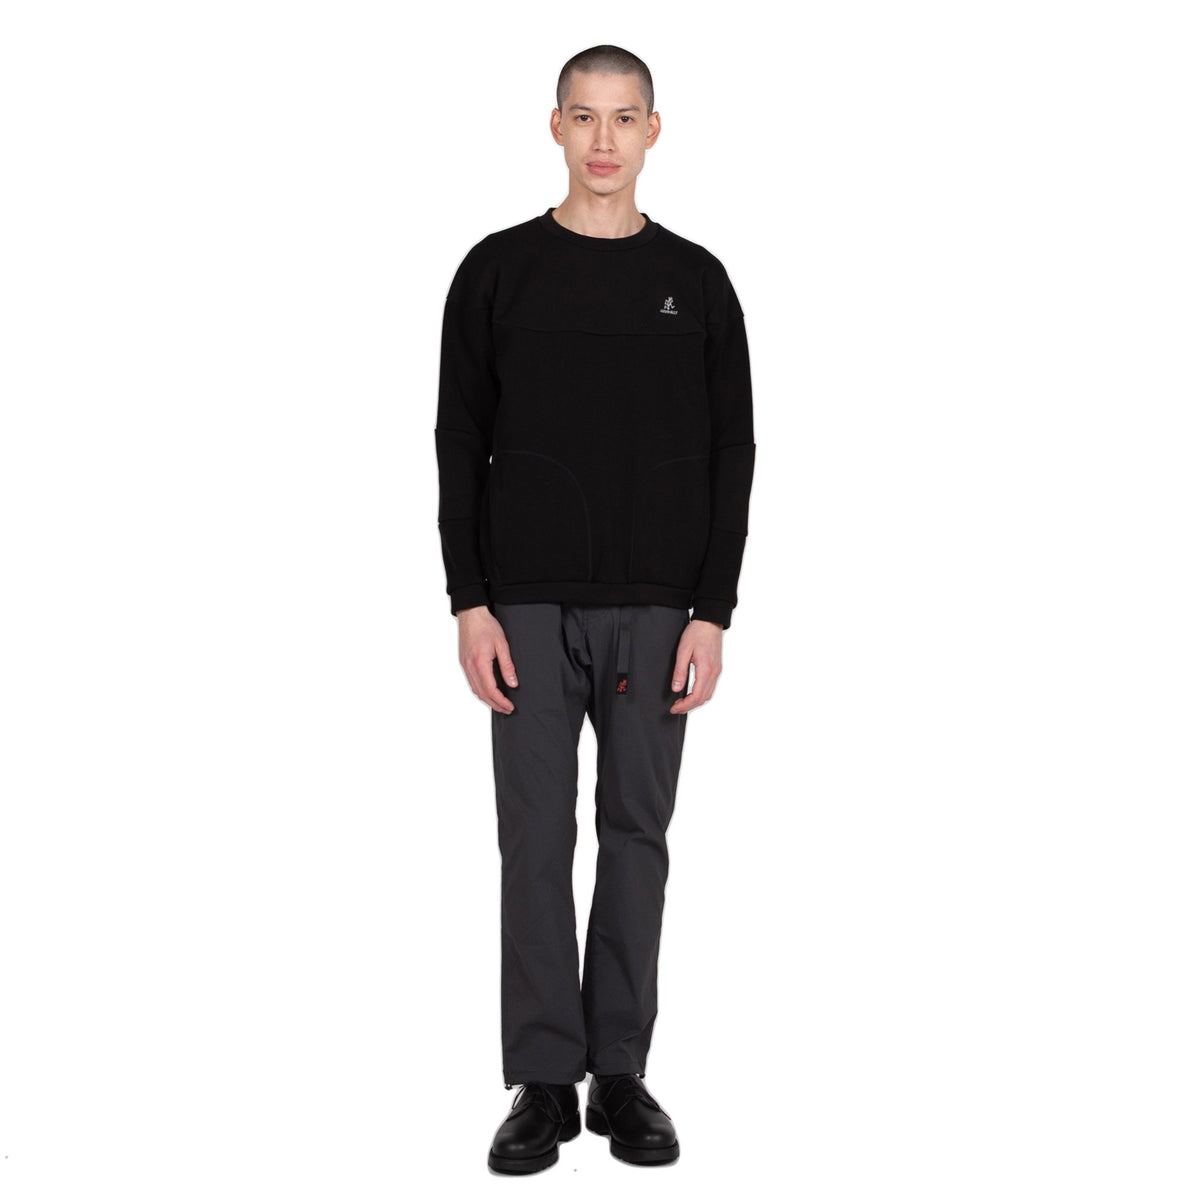 Gramicci Congaree Sweater in Black outer wear sweatshirt